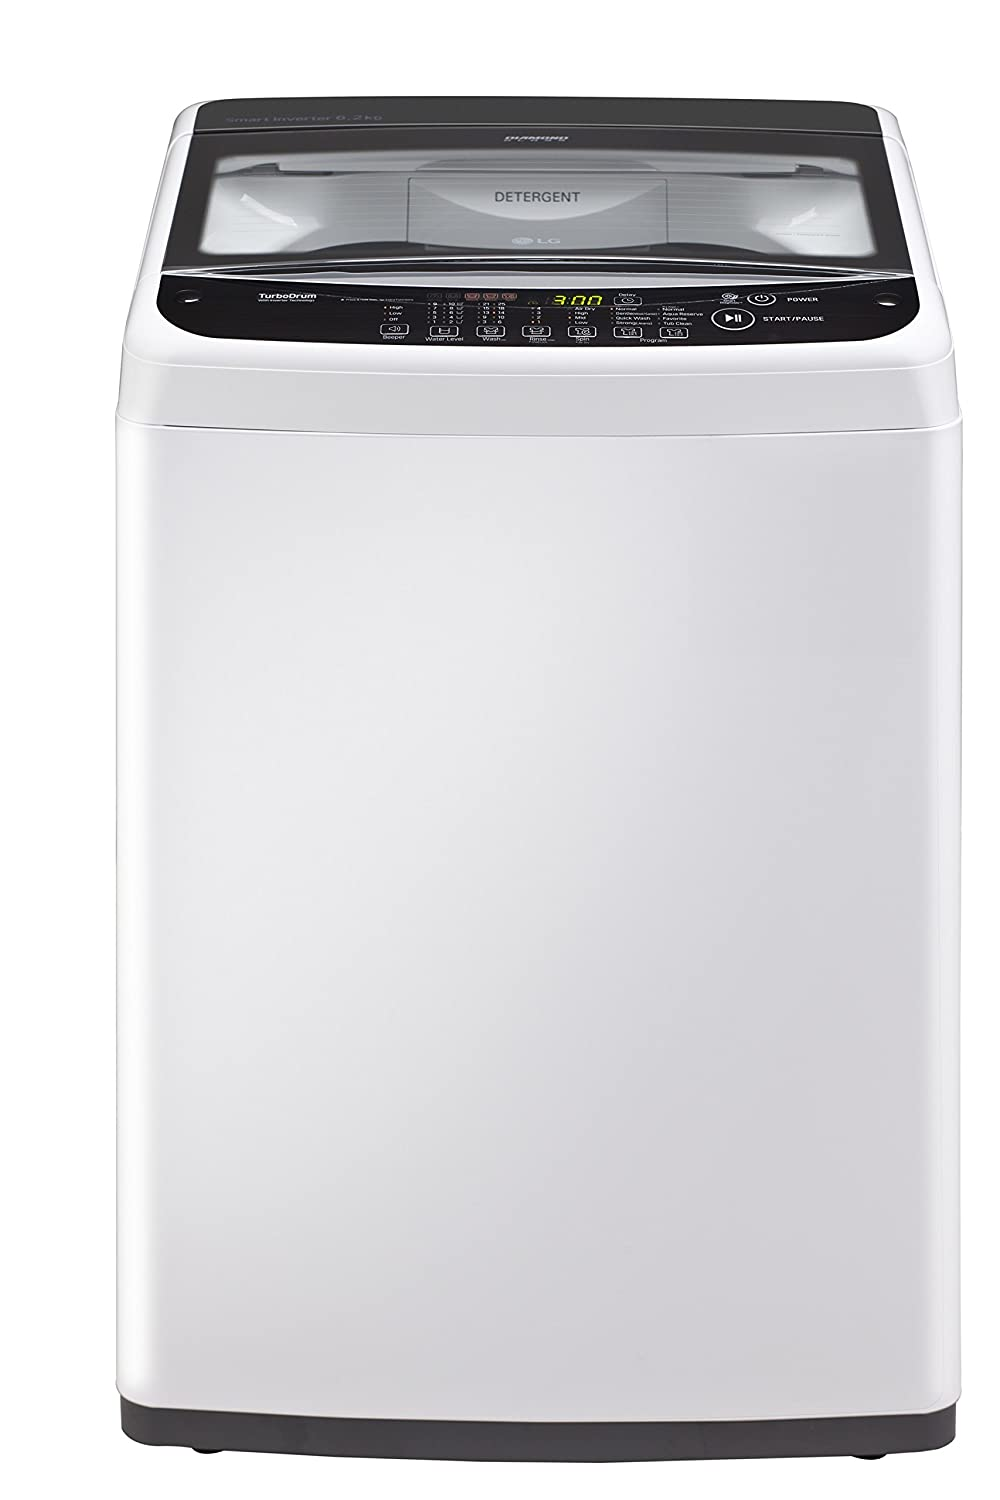 LG 6.2 kg Inverter Fully-Automatic Top Loading Washing Machine (T7281NDDL,...